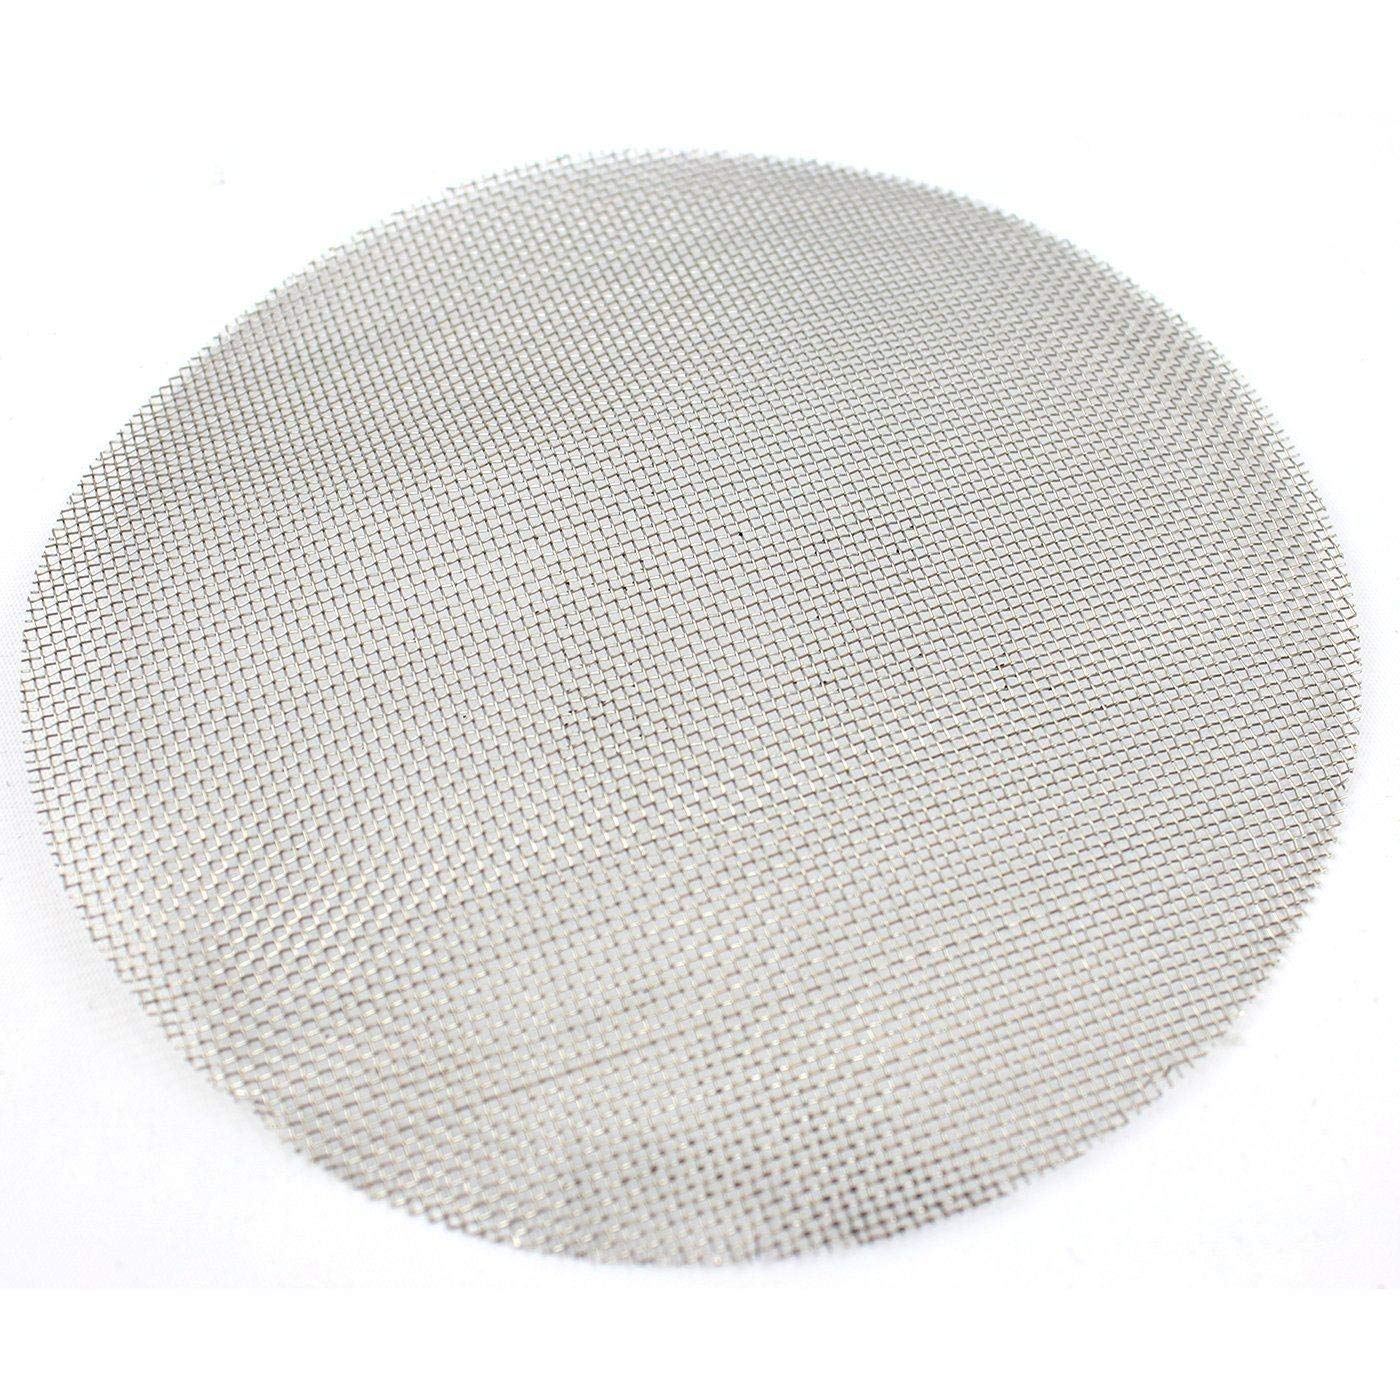 150 Micron BVV 10 Inch Pre-Cut Stainless Steel Mesh for Tri-Clamp Filter Plates 100 Mesh